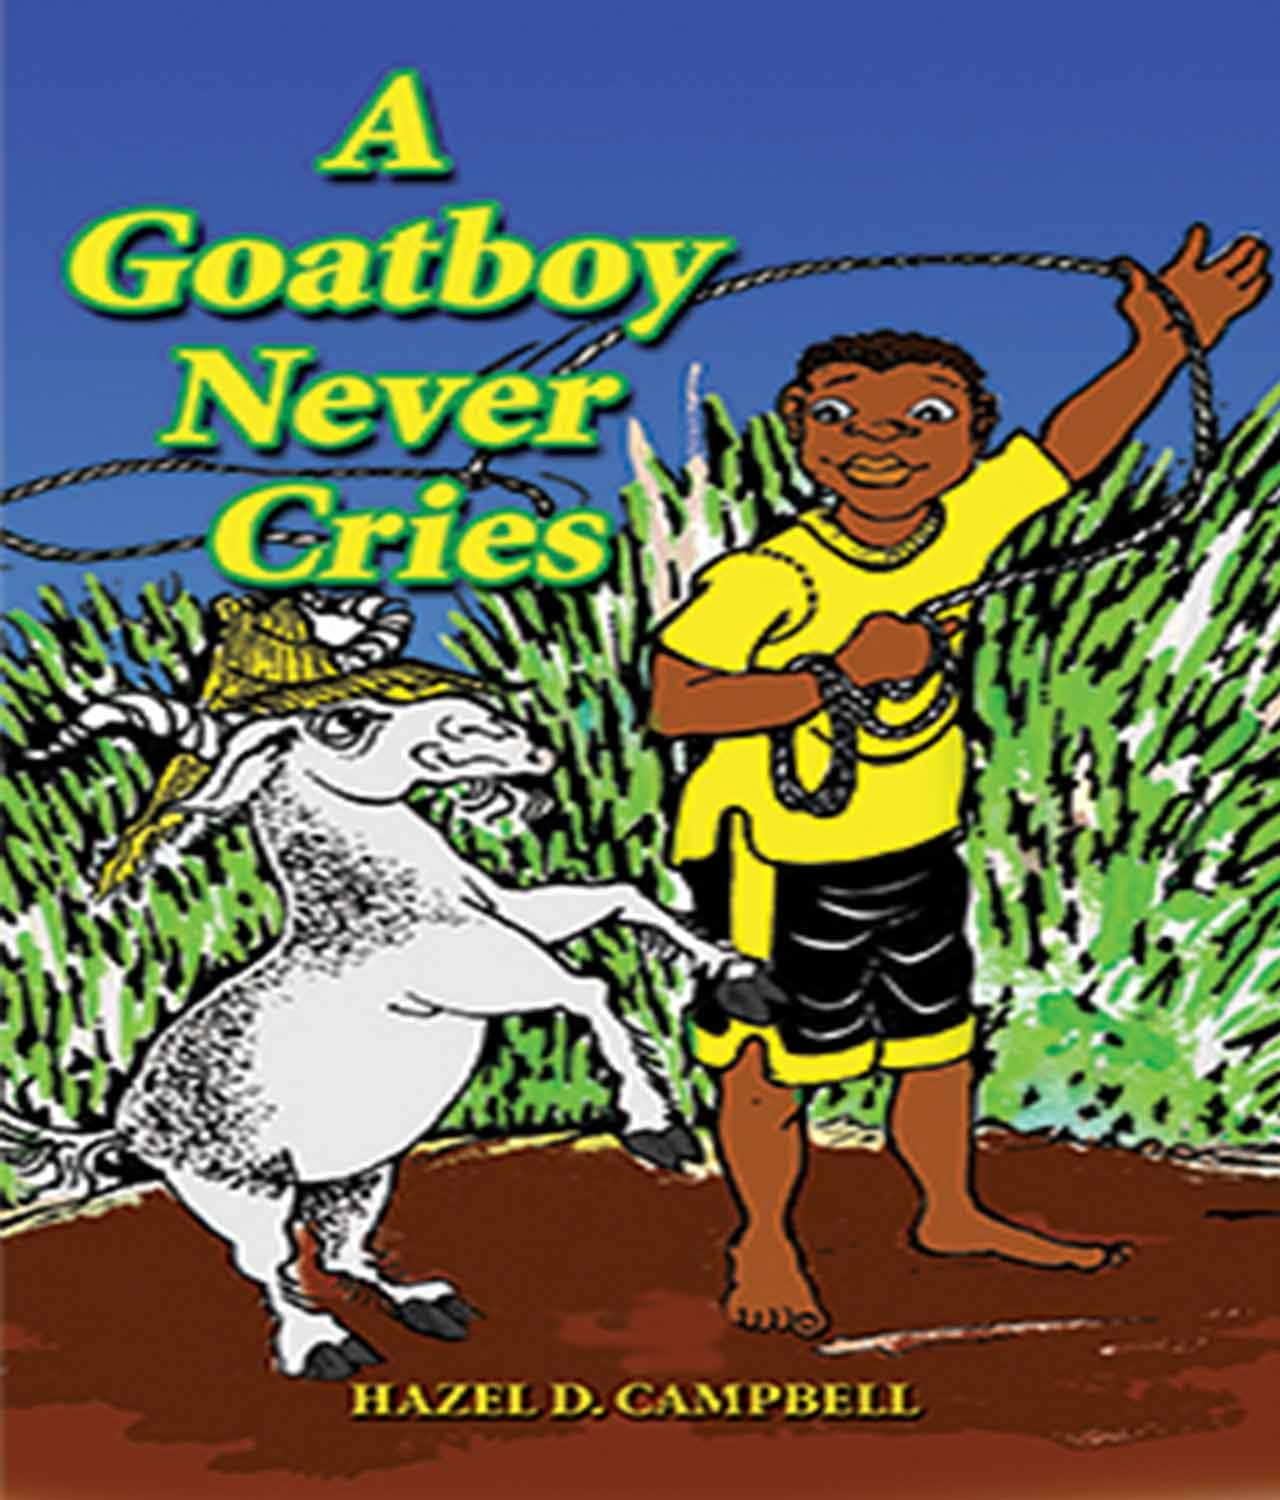 A Goatboy Never Cries - Best Buy - Shop Now!